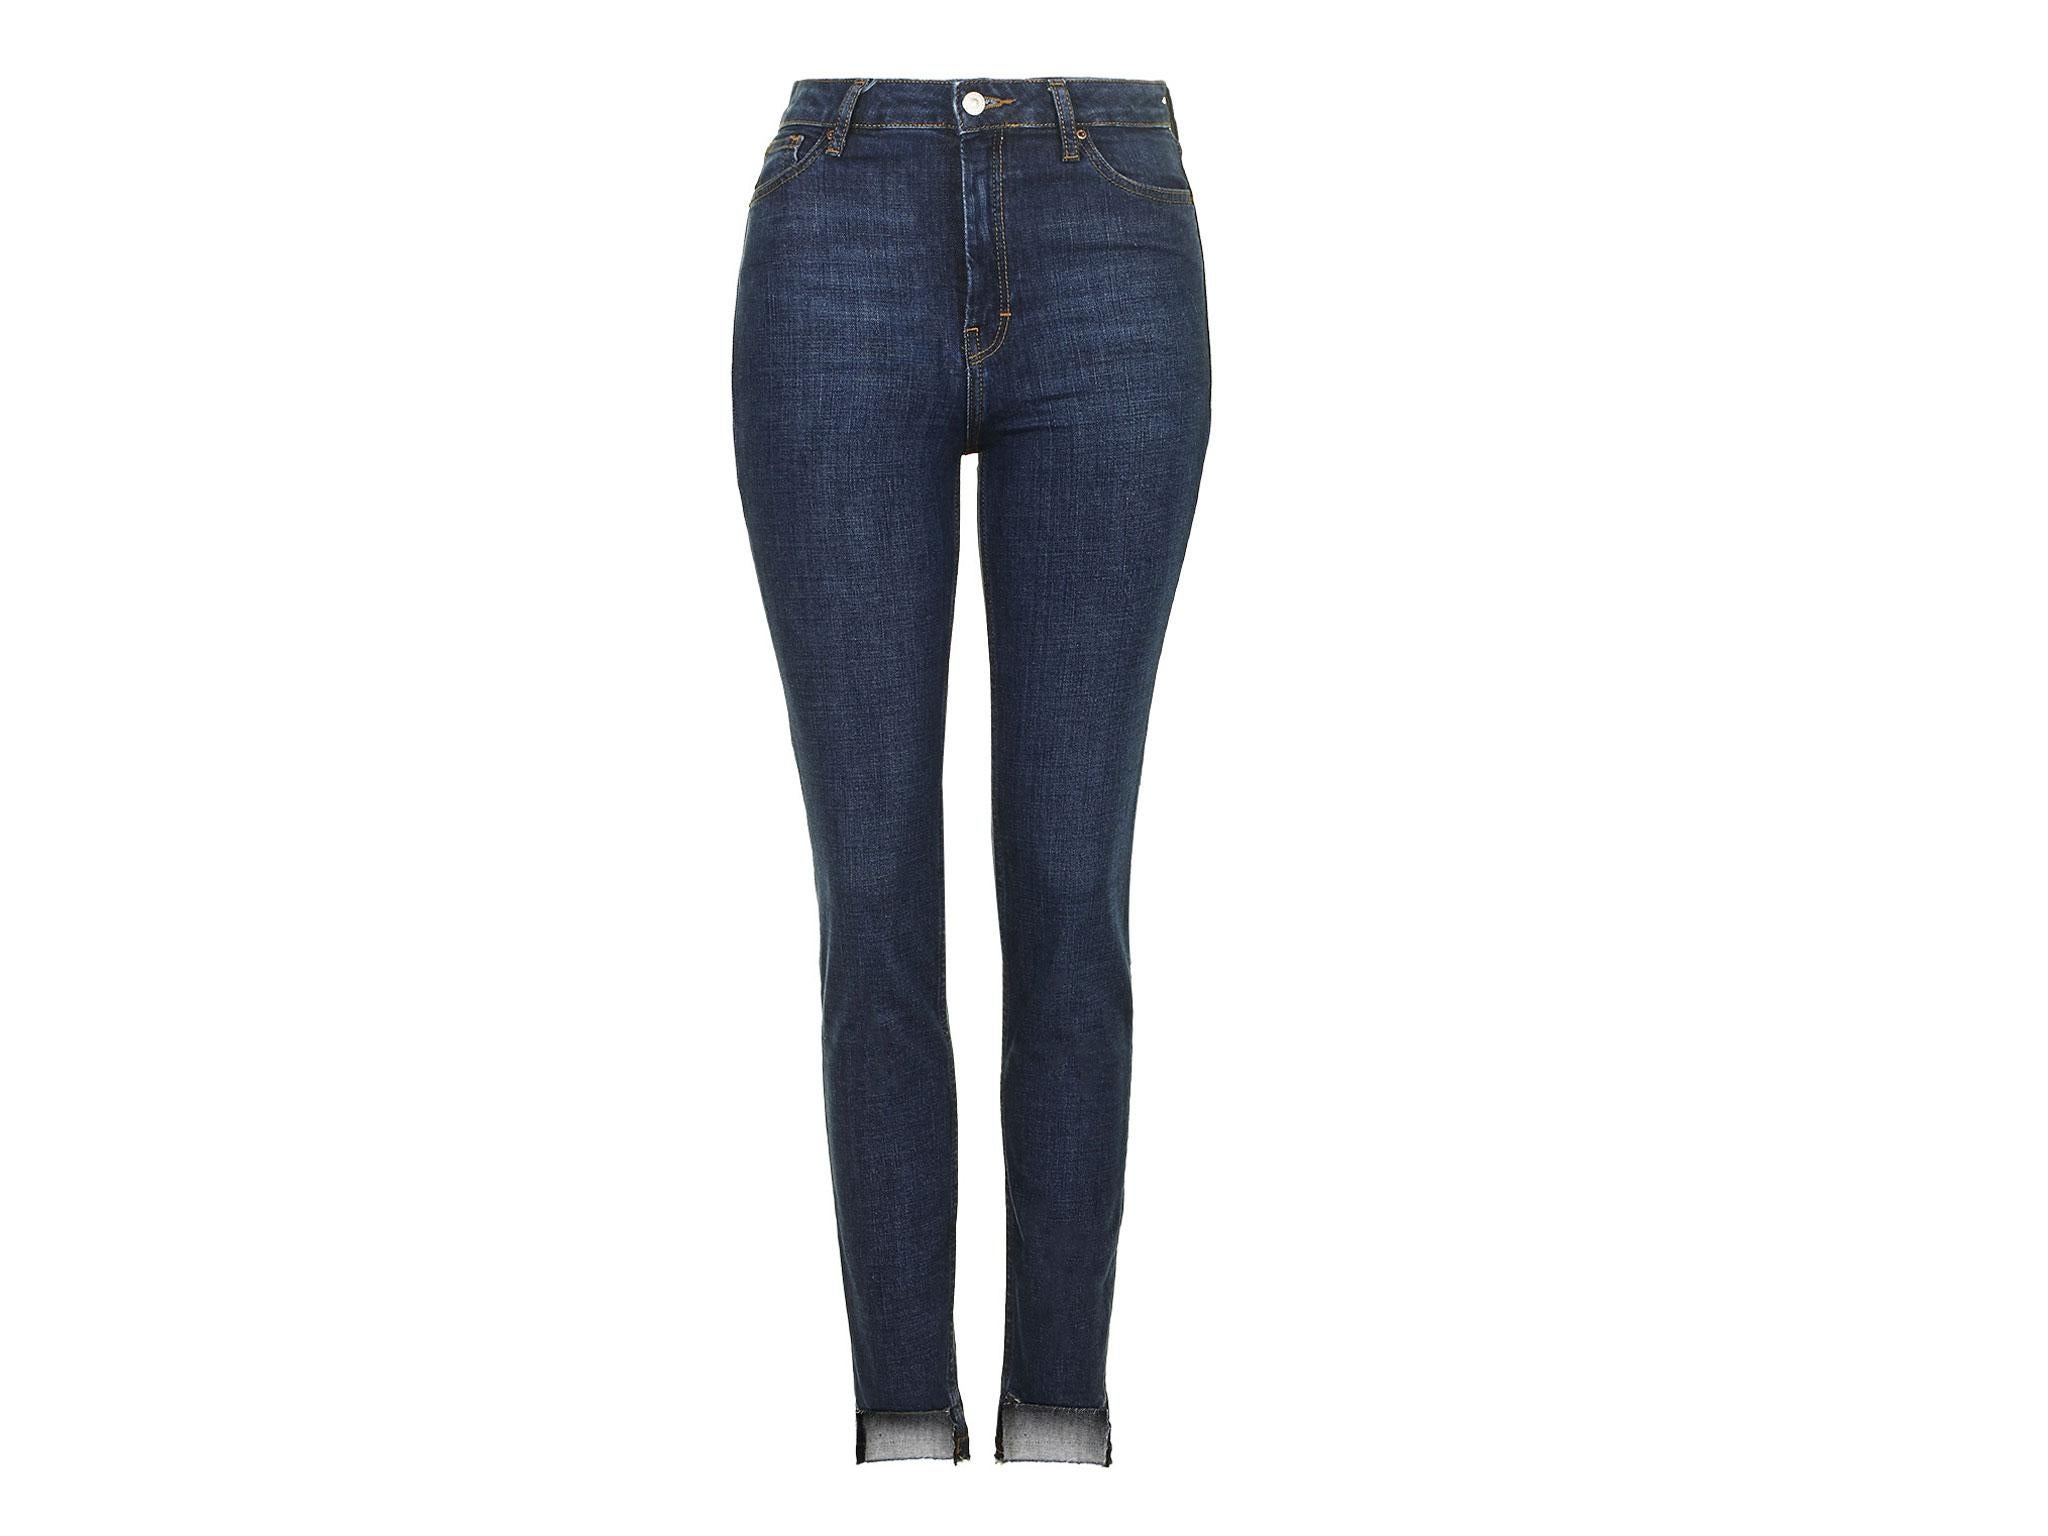 c72cd4051bfe1 A pair of Topshop jeans are bound to have graced your wardrobe at some  point or another  they re the high street go-to for on trend denim and with  so many ...